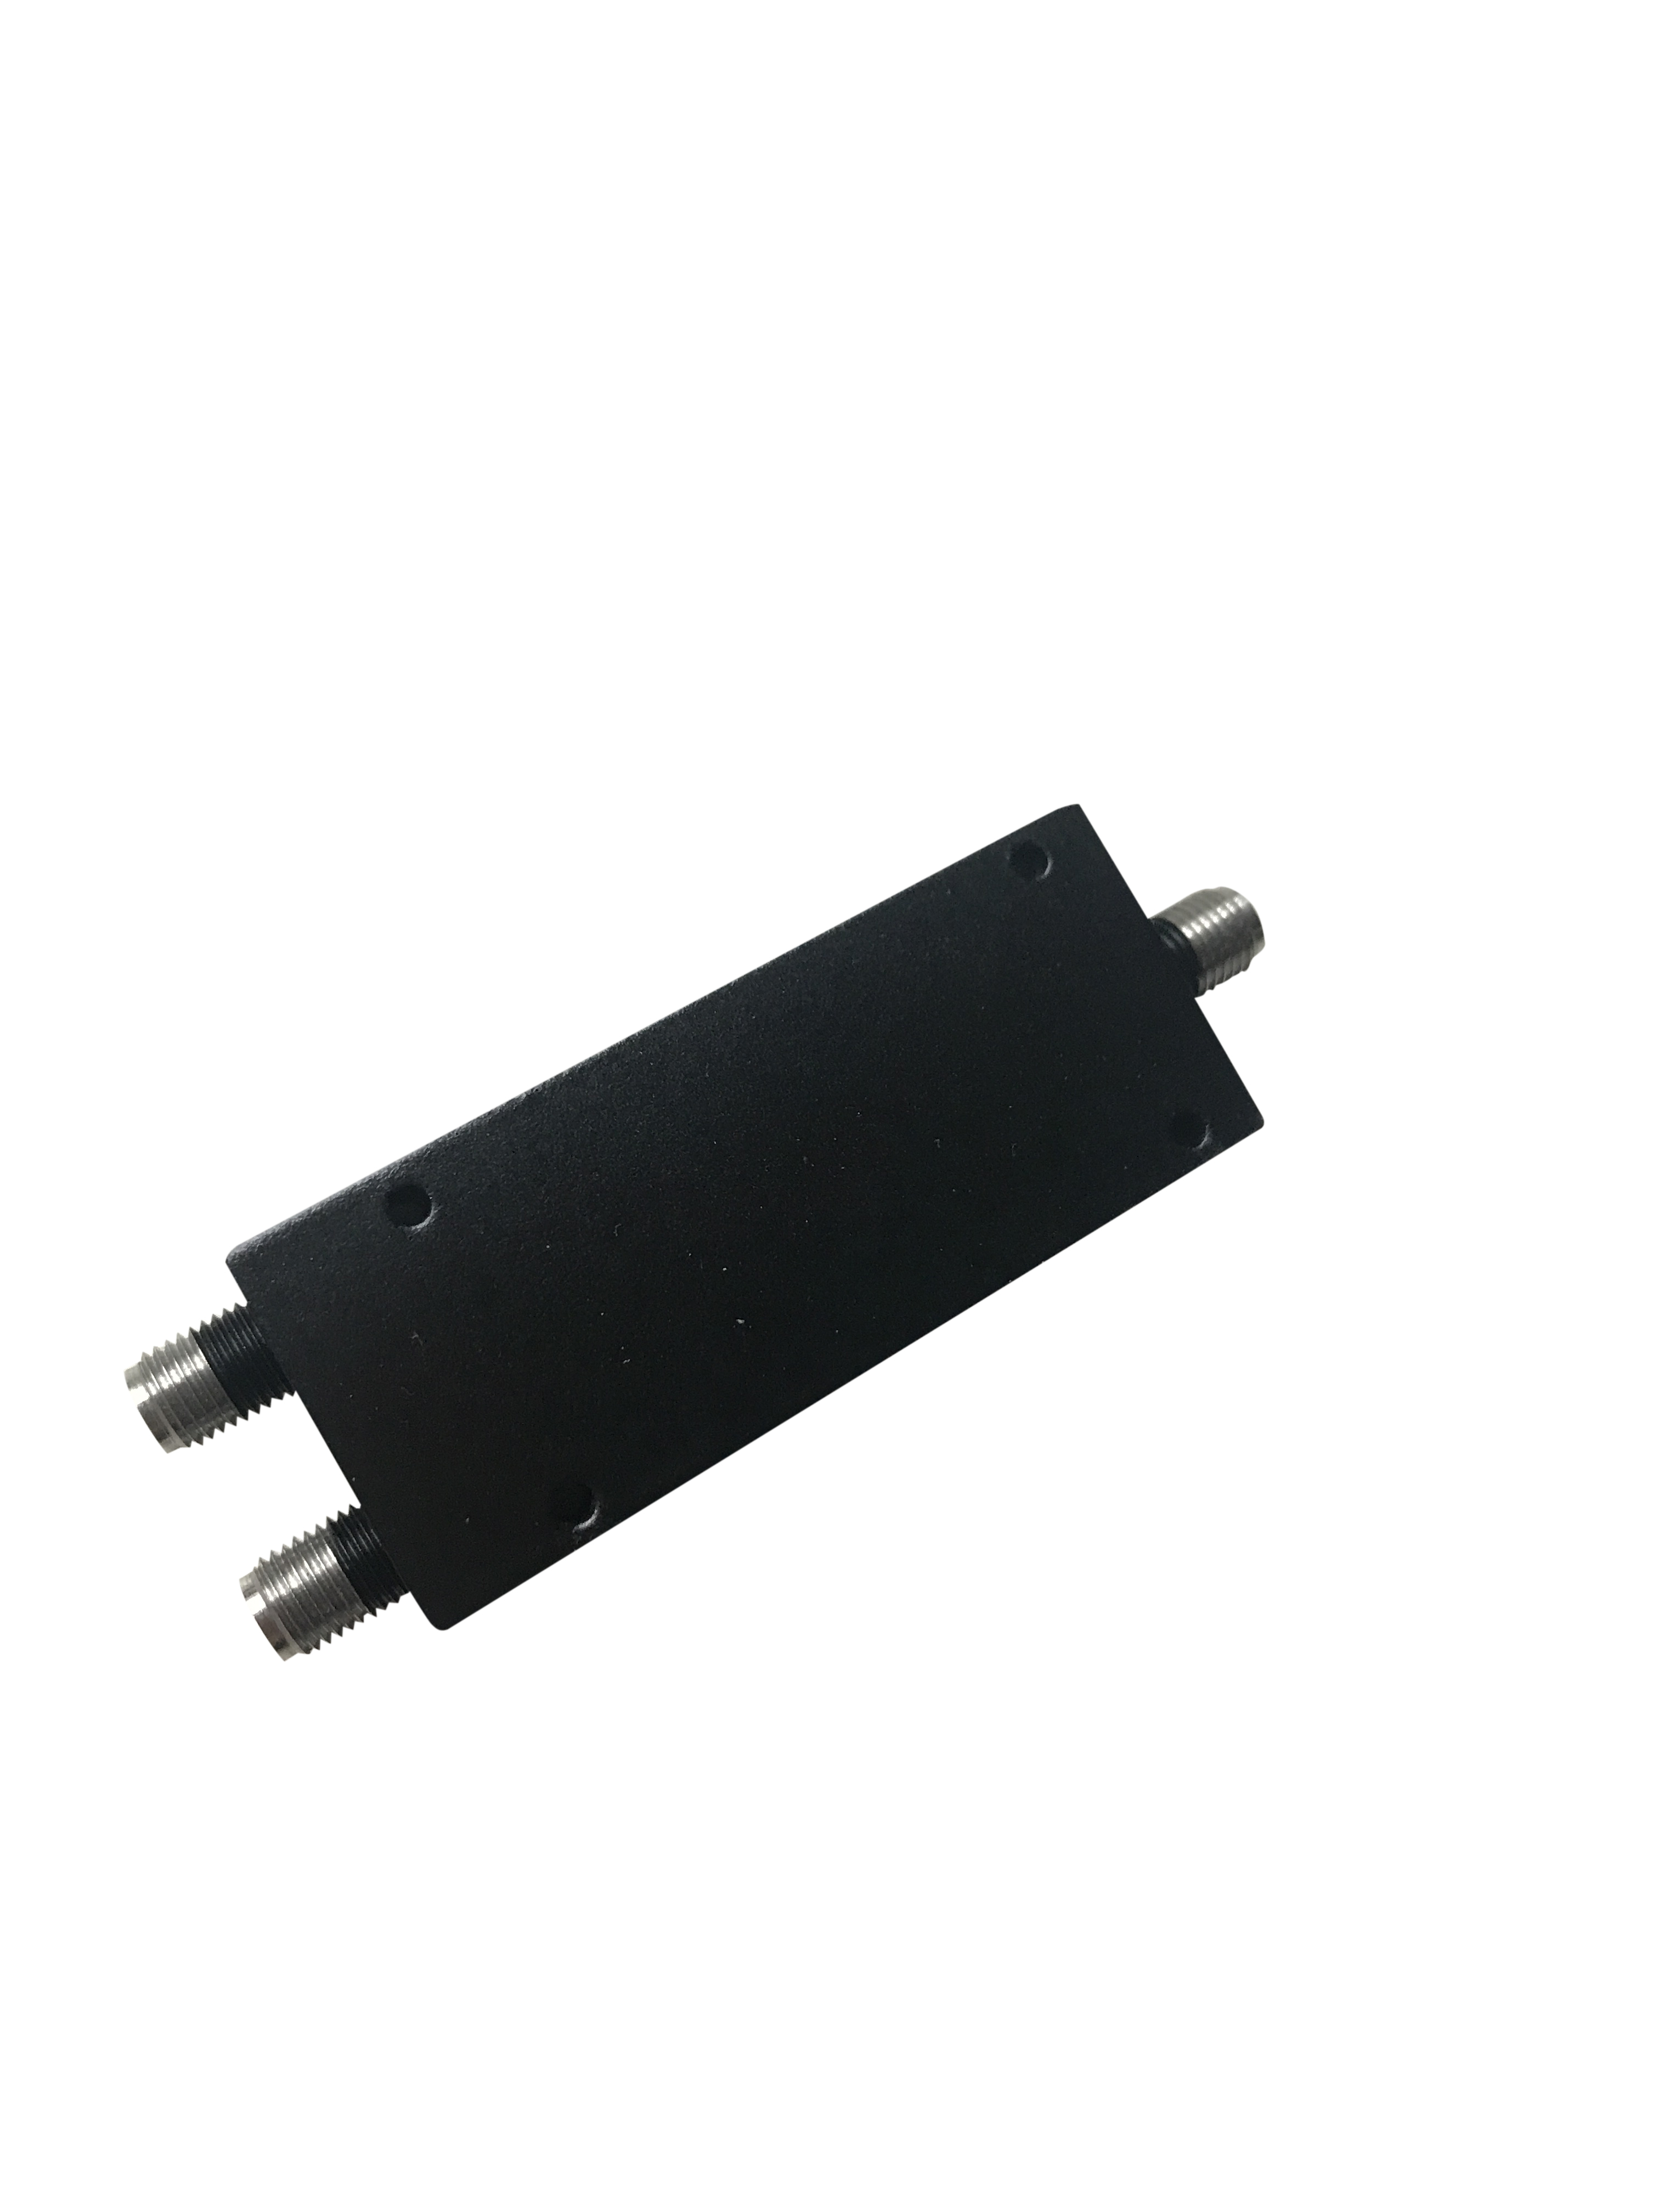 2-50G  2WAY POWER DIVIDER